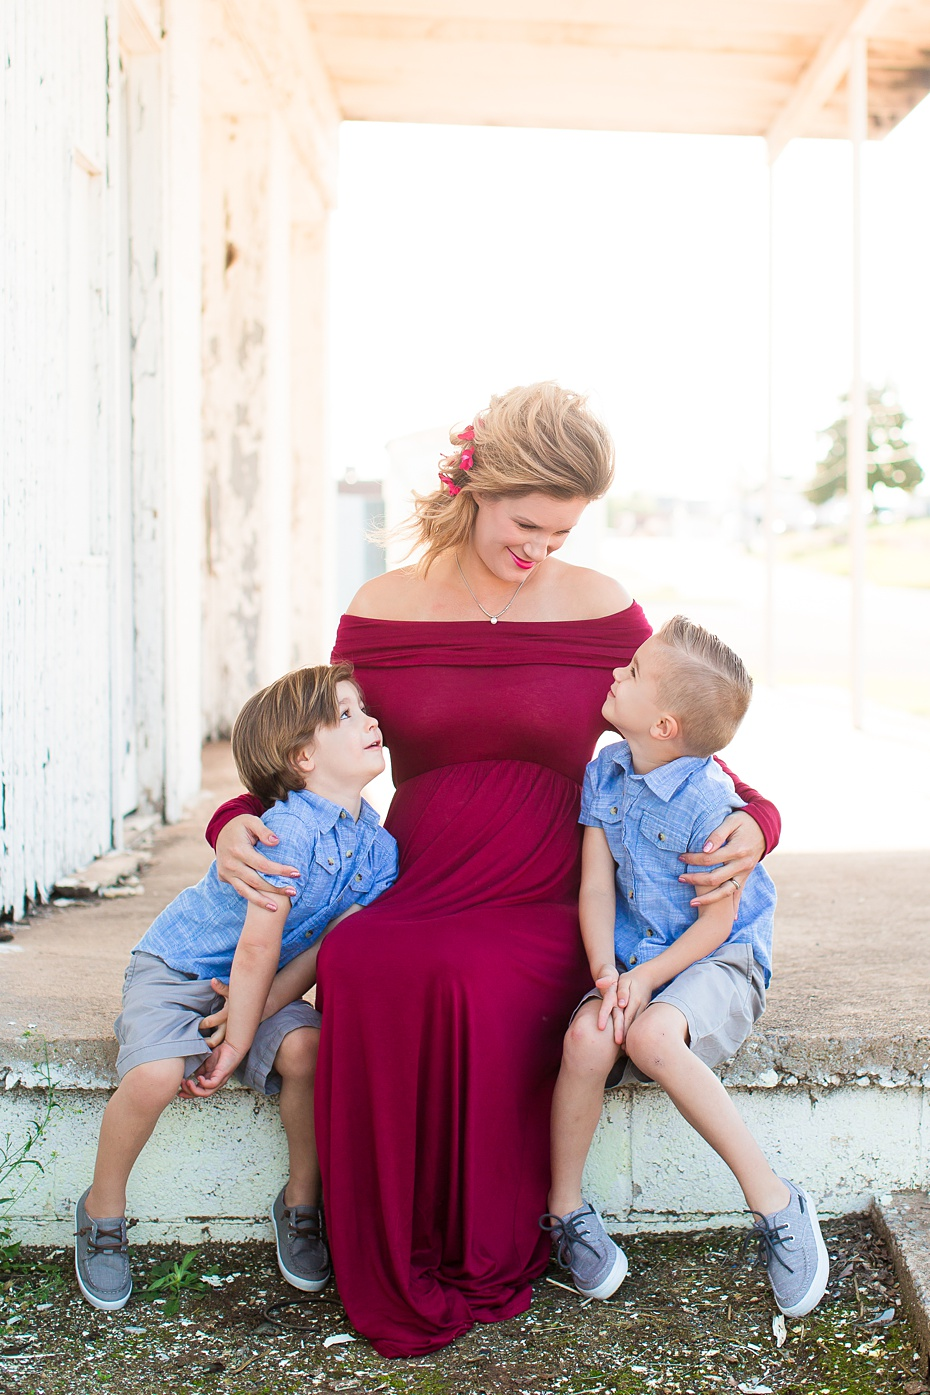 truly_you_photography_enid__photographer_family_maternity-15_web.jpg